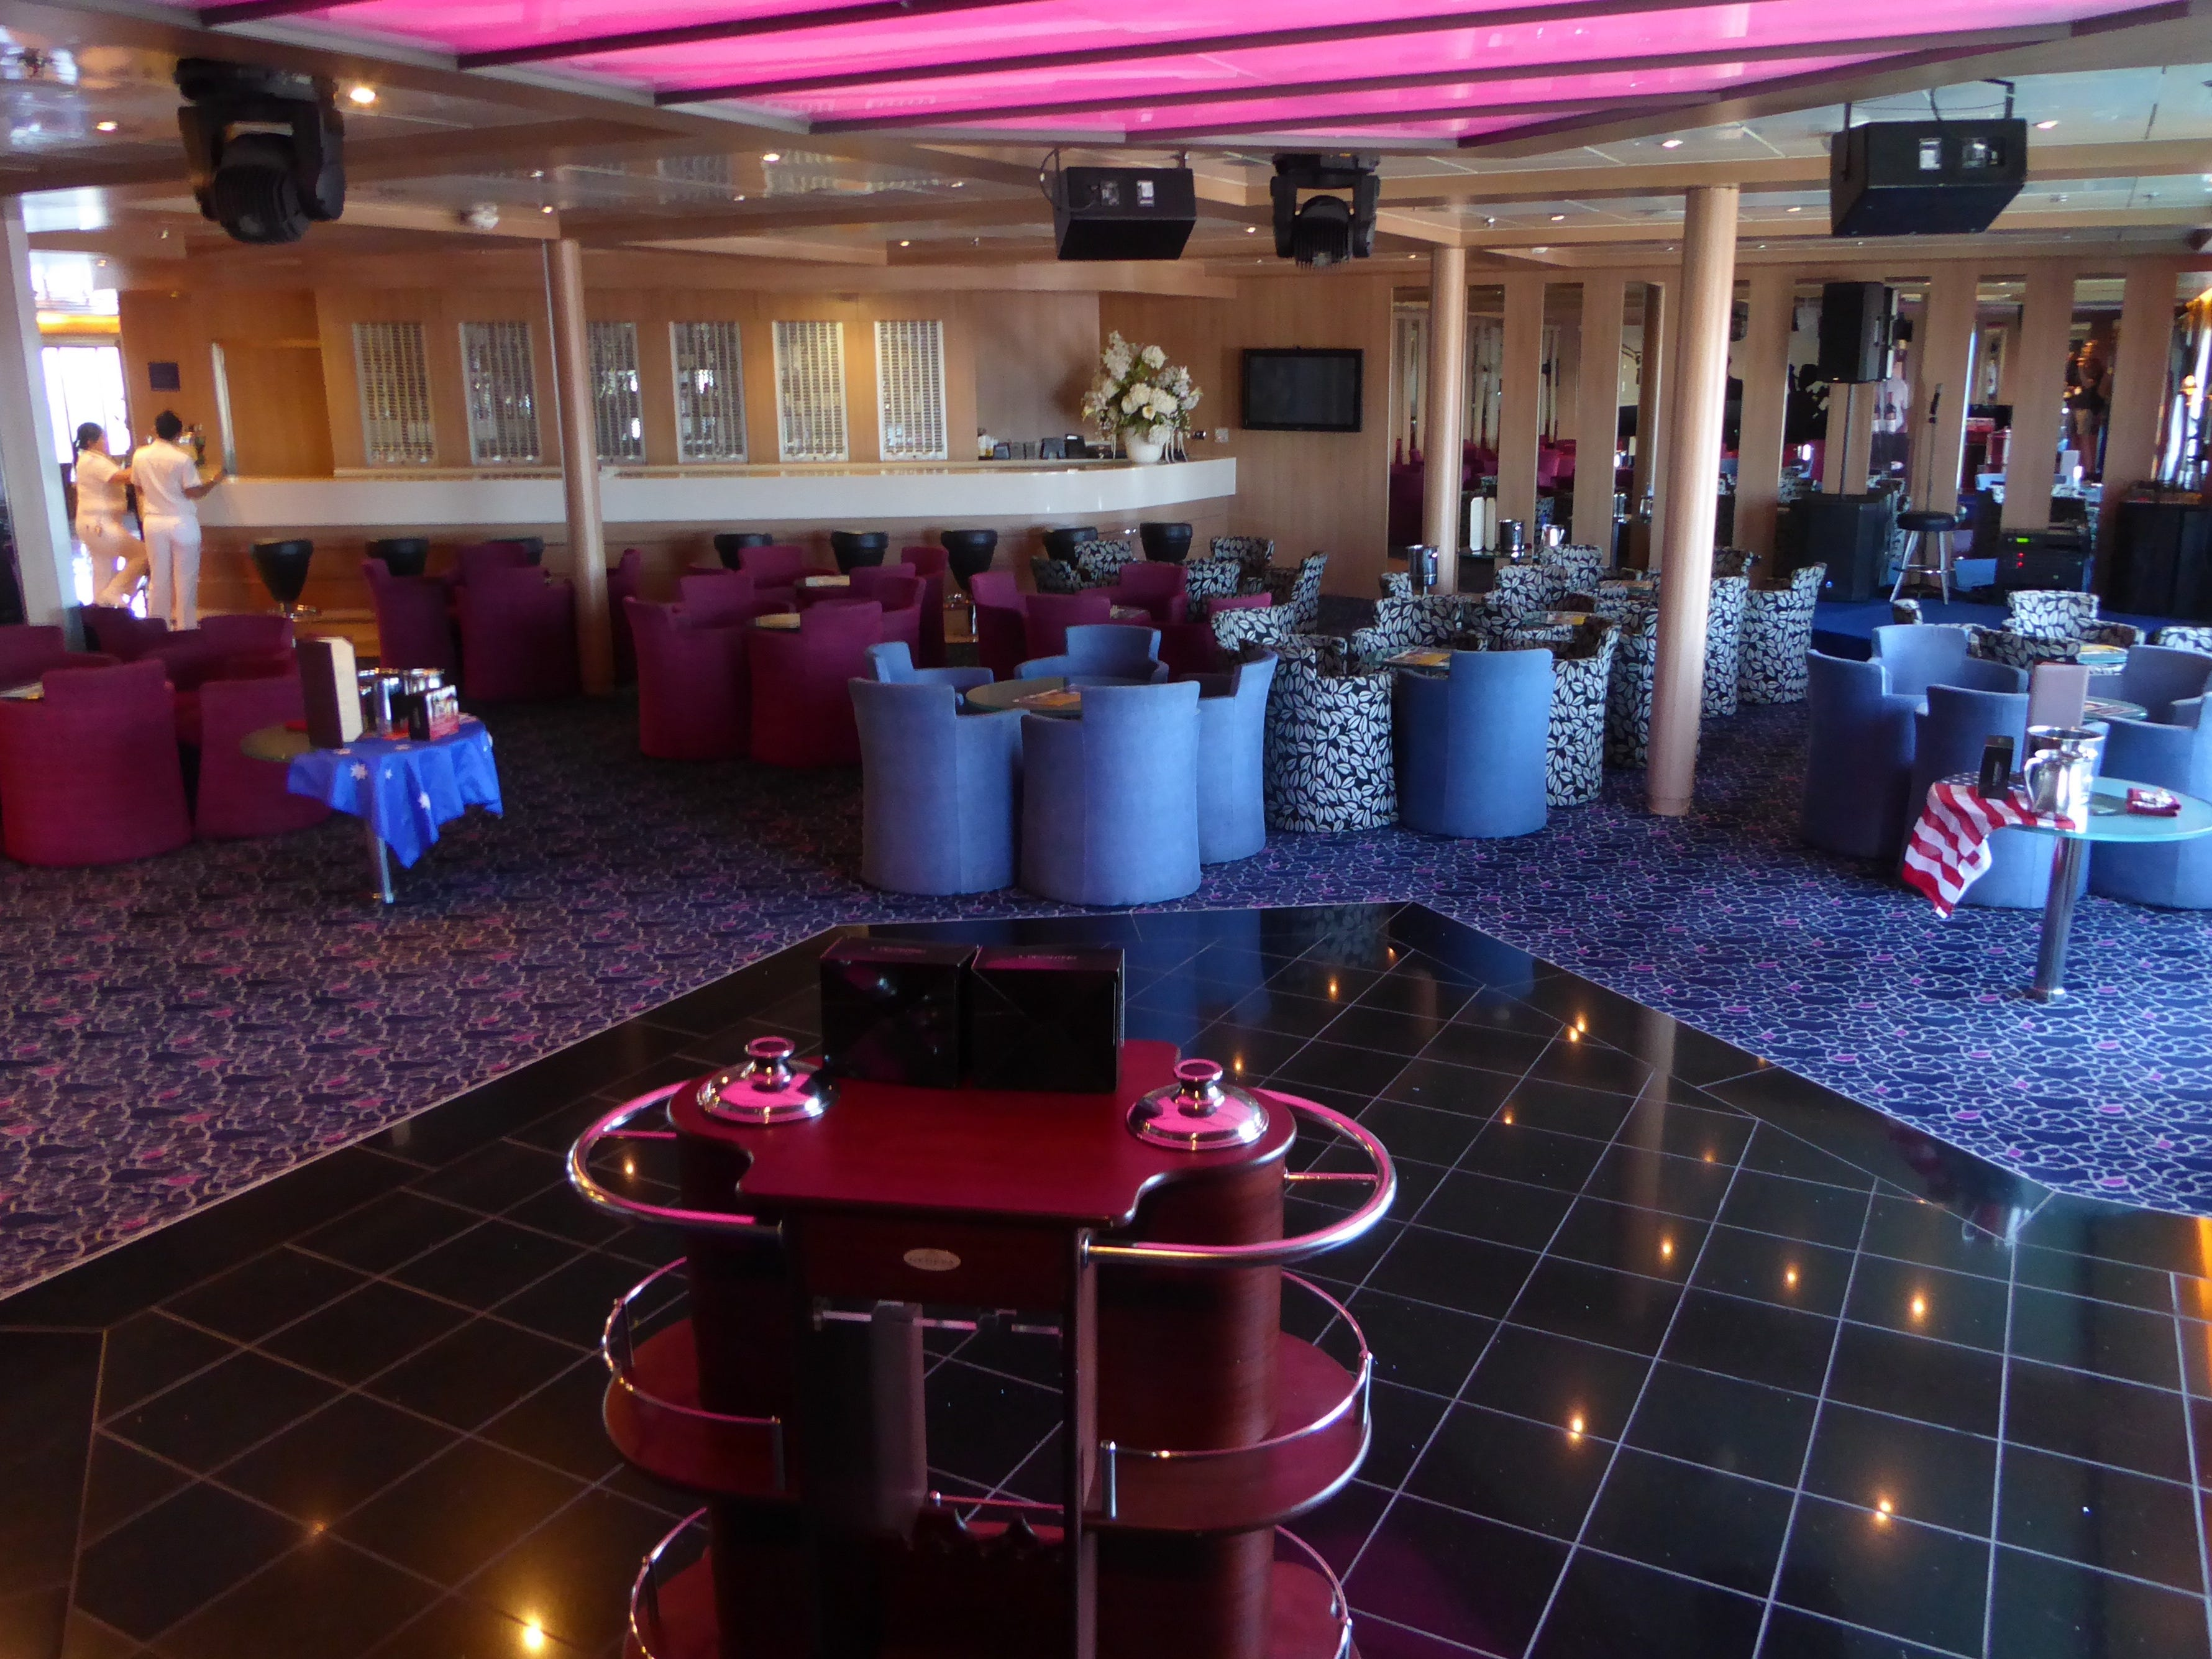 Named for the Regal Empress, another former classic liner that spent years sailing to the Bahamas from Florida, the Regal Room is a lounge and bar on Paradise Deck.